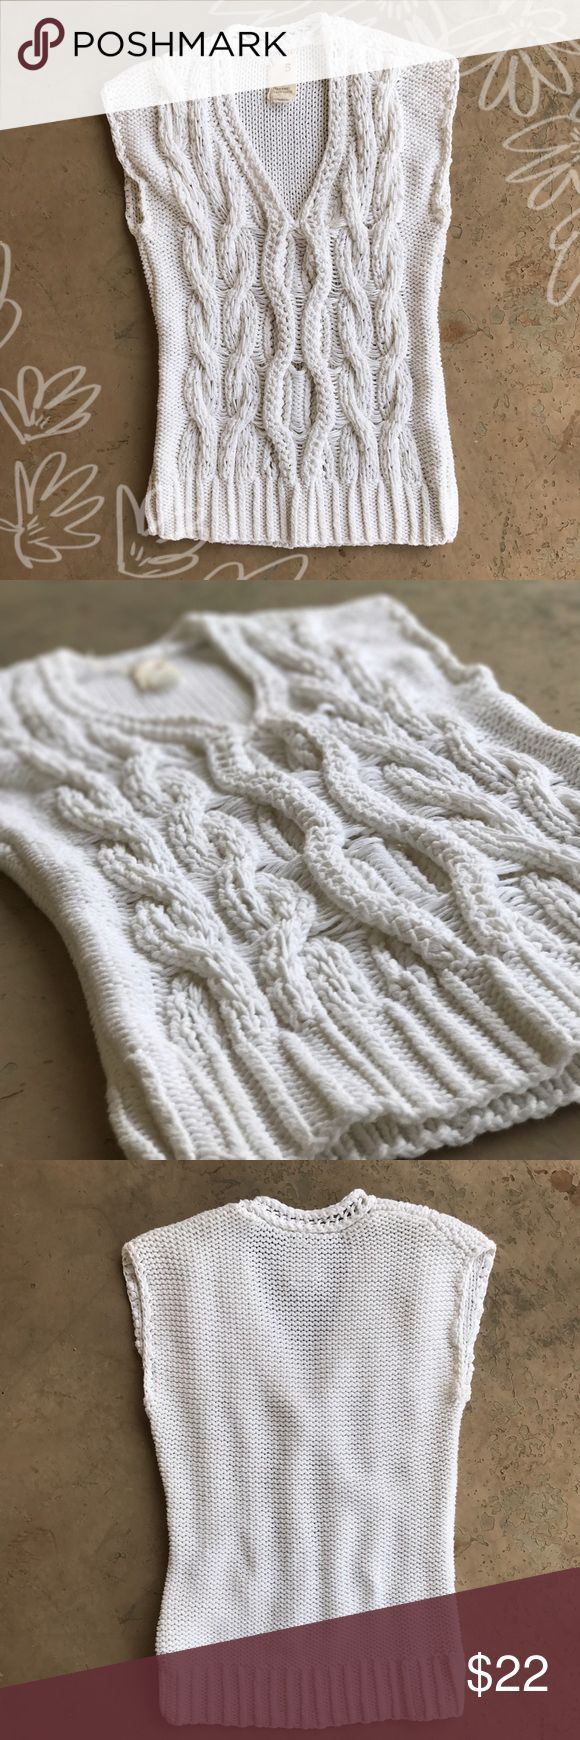 Anthropologie White Chunky Knit Sleeveless Sweater Excellent condition chunky knit warm sleeveless sweater from Anthropologie. From the label Far Away From Close. Size small. Anthropologie Sweaters Crew & Scoop Necks